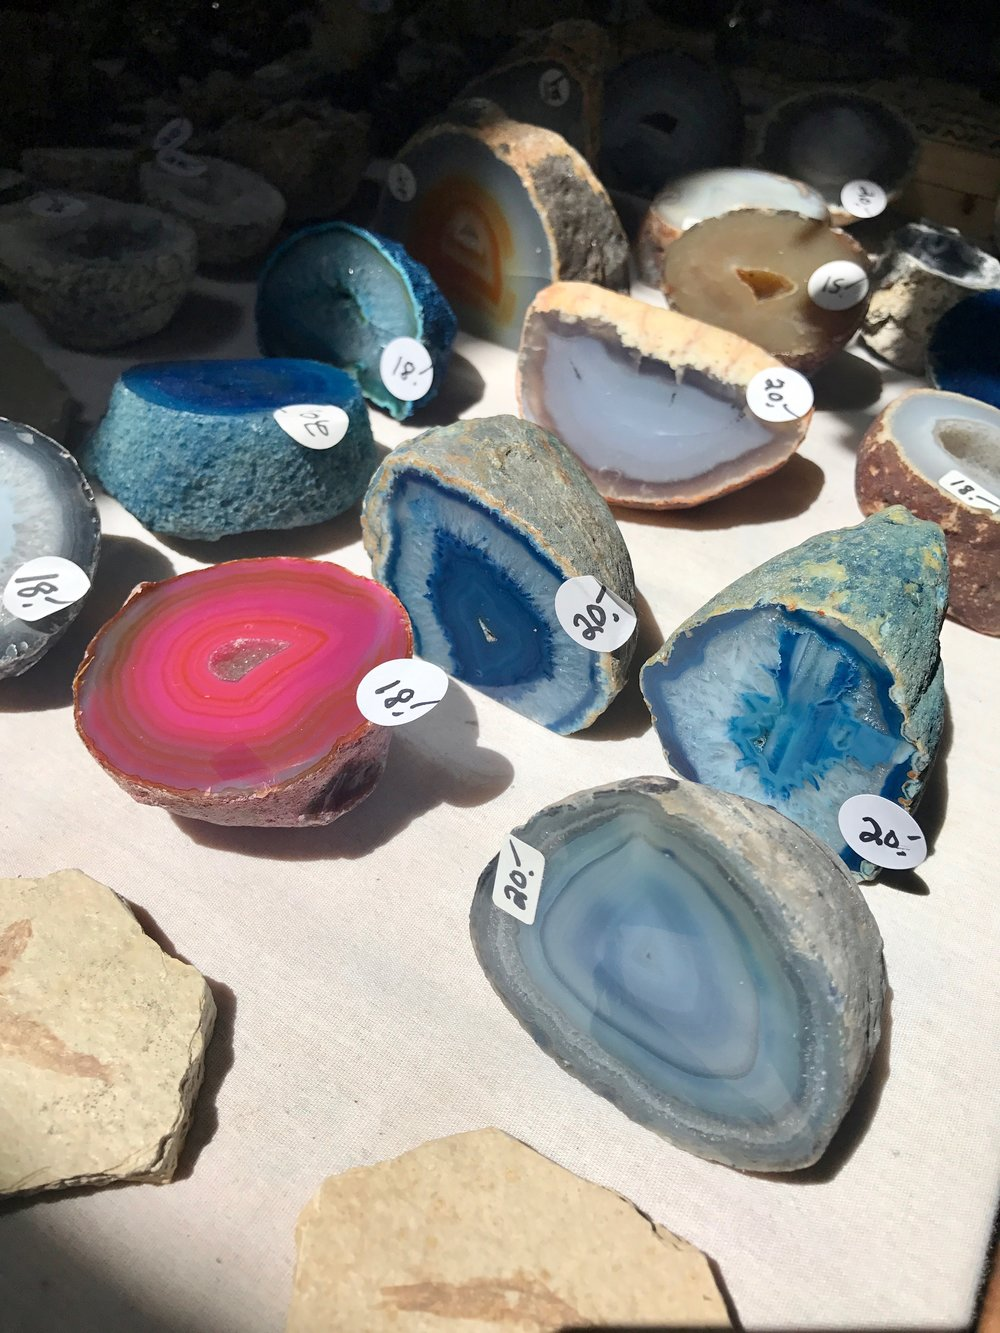 geodes at the trading post in cerrillos. too much fun shopping for rocks here.